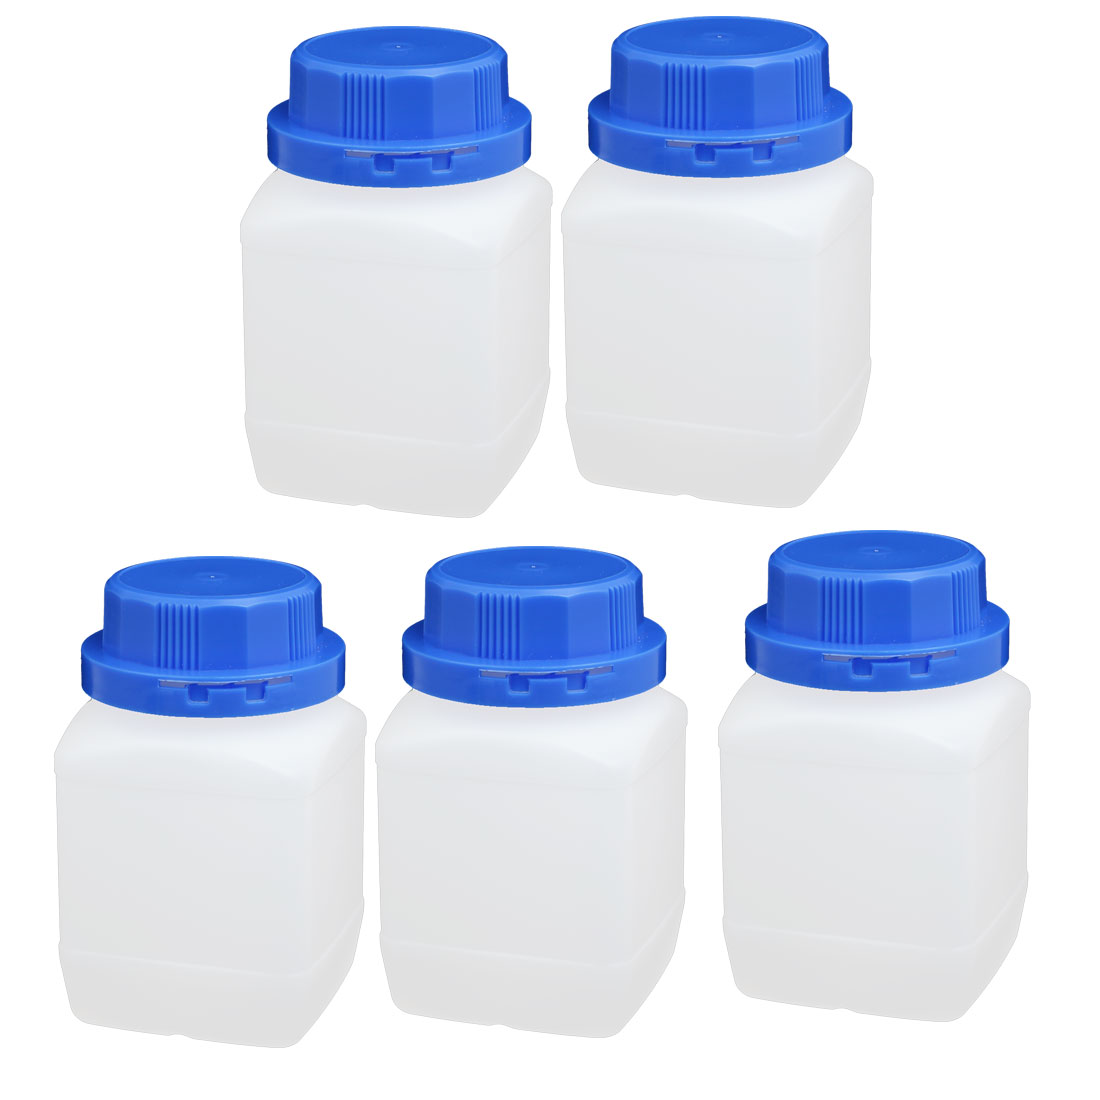 5pcs 450ml Plastic Square Wide Mouth Chemical Sample Reagent Bottle Thickening